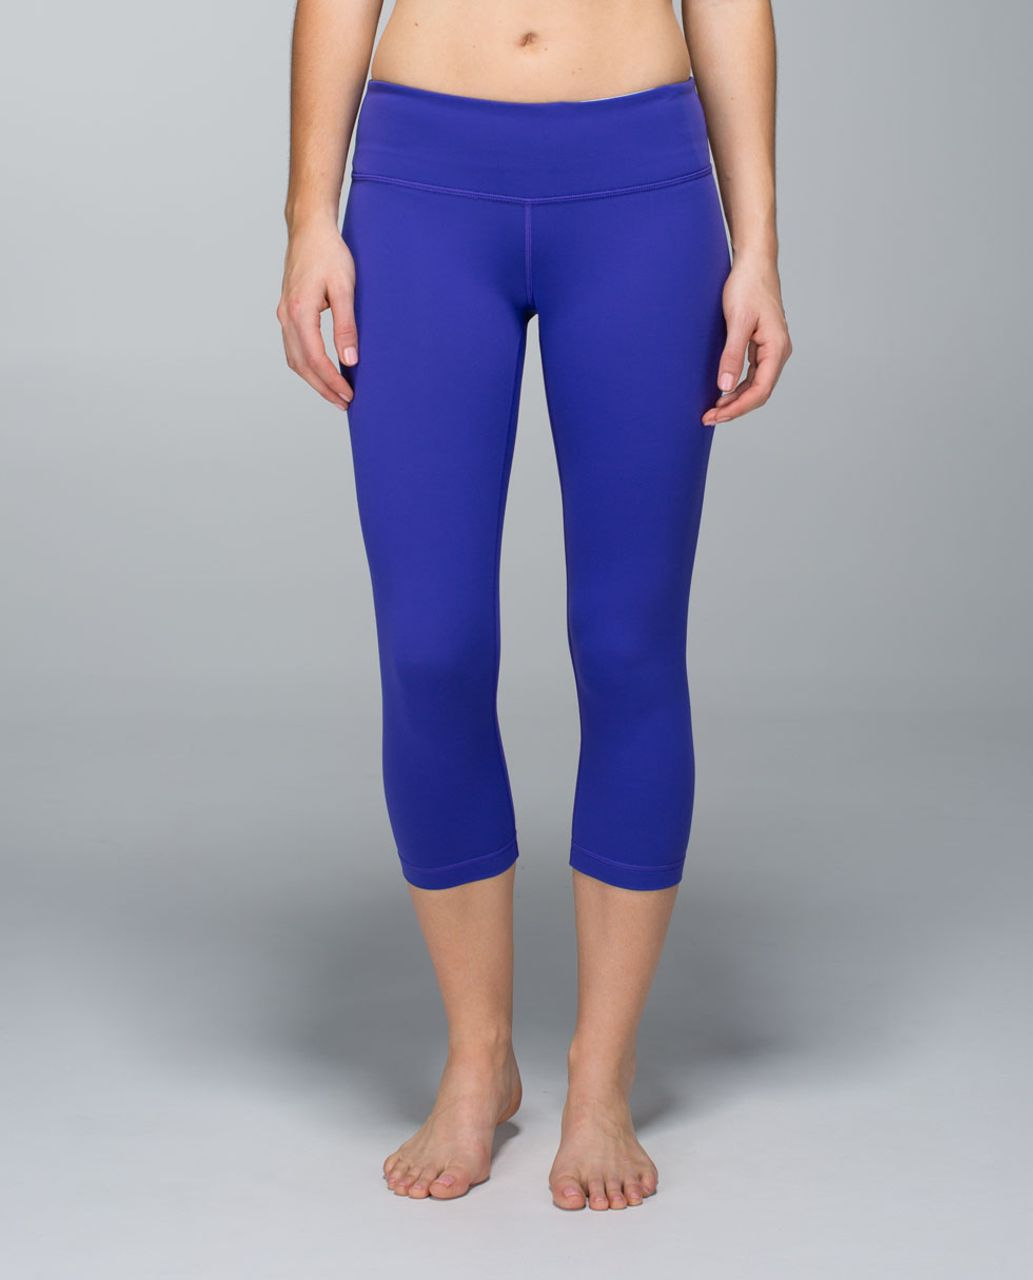 Lululemon Wunder Under Crop (Reversible) - Bruised Berry / Black